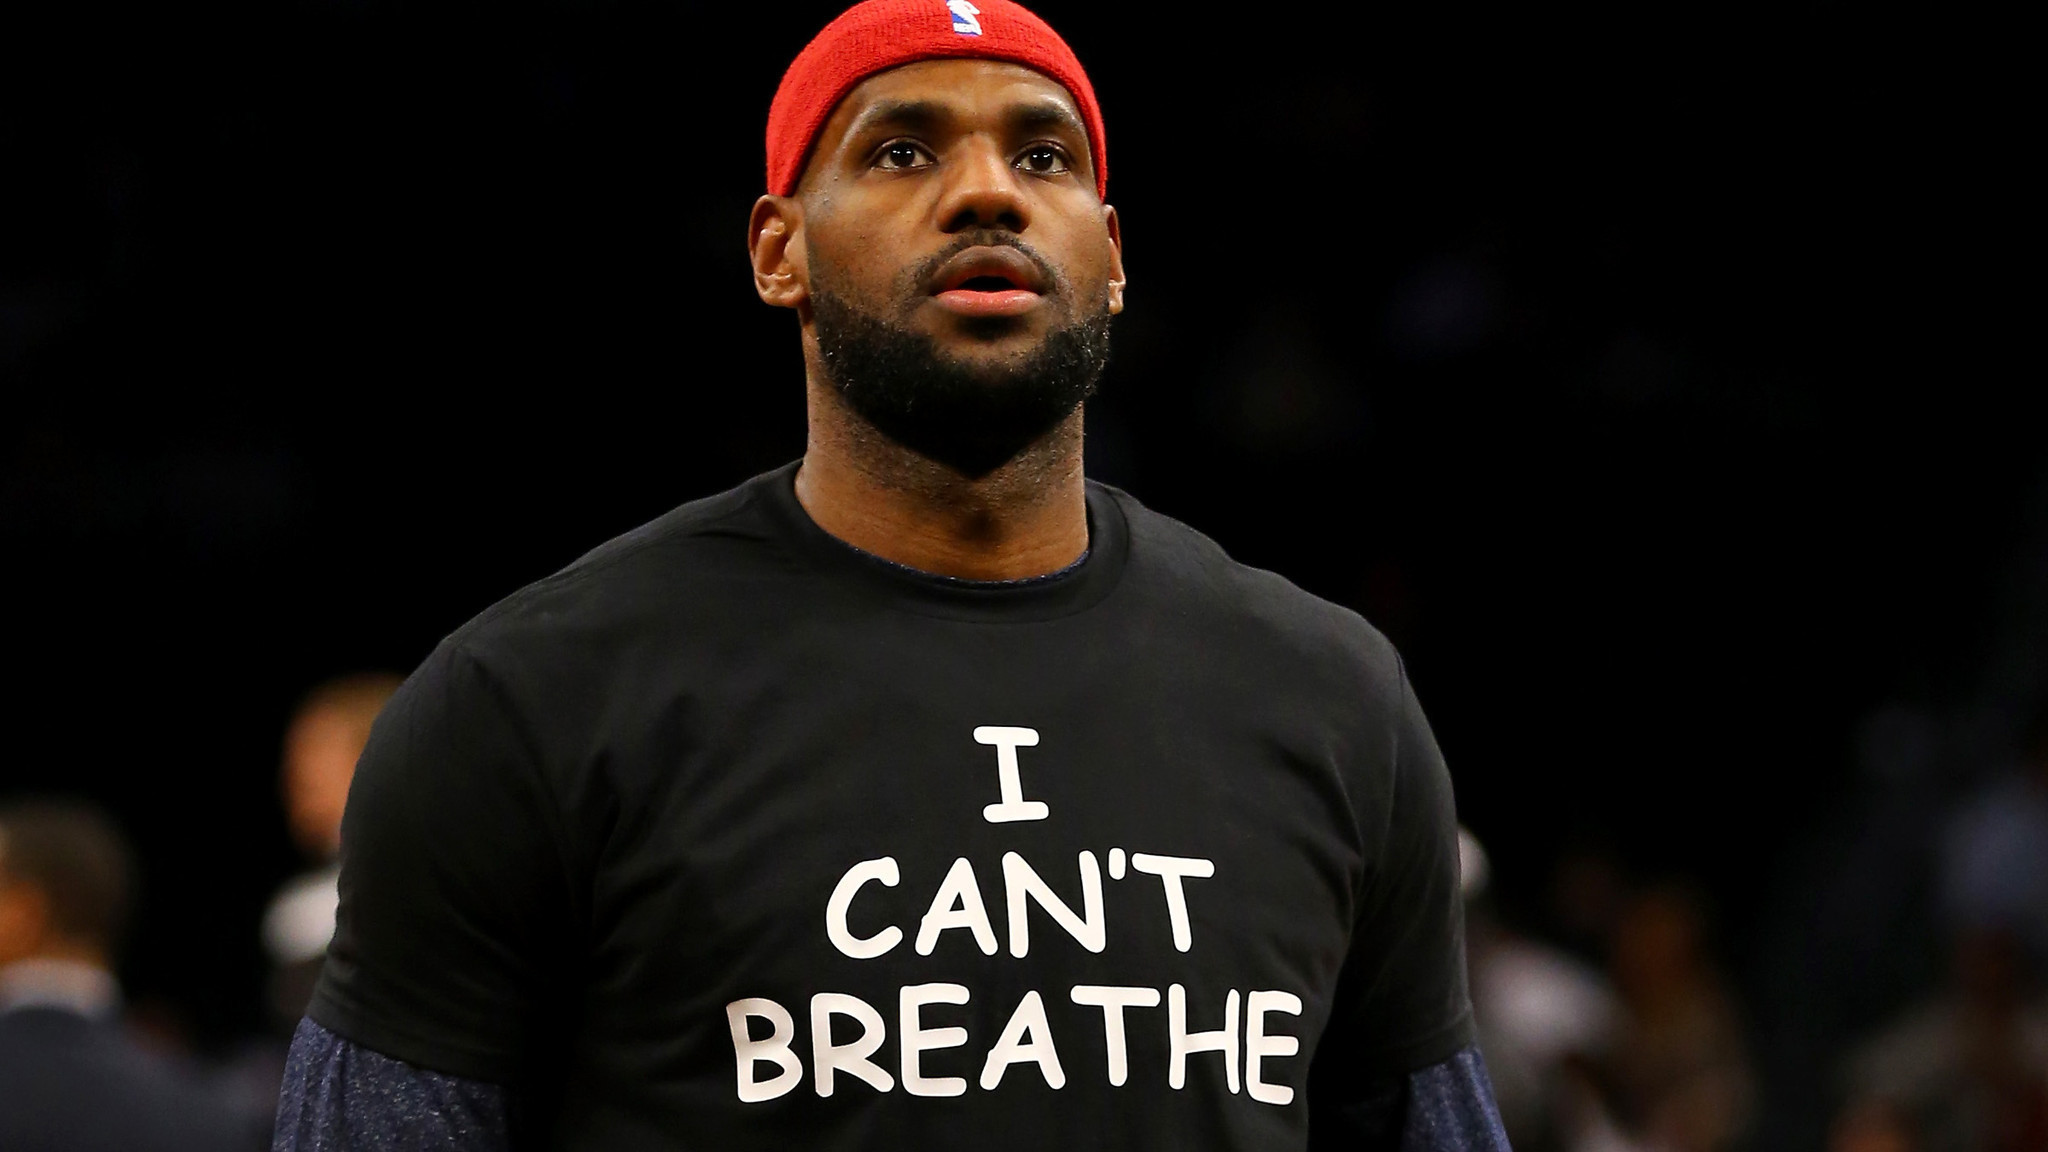 Activists question LeBron James39; position in Tamir Rice protest  LA